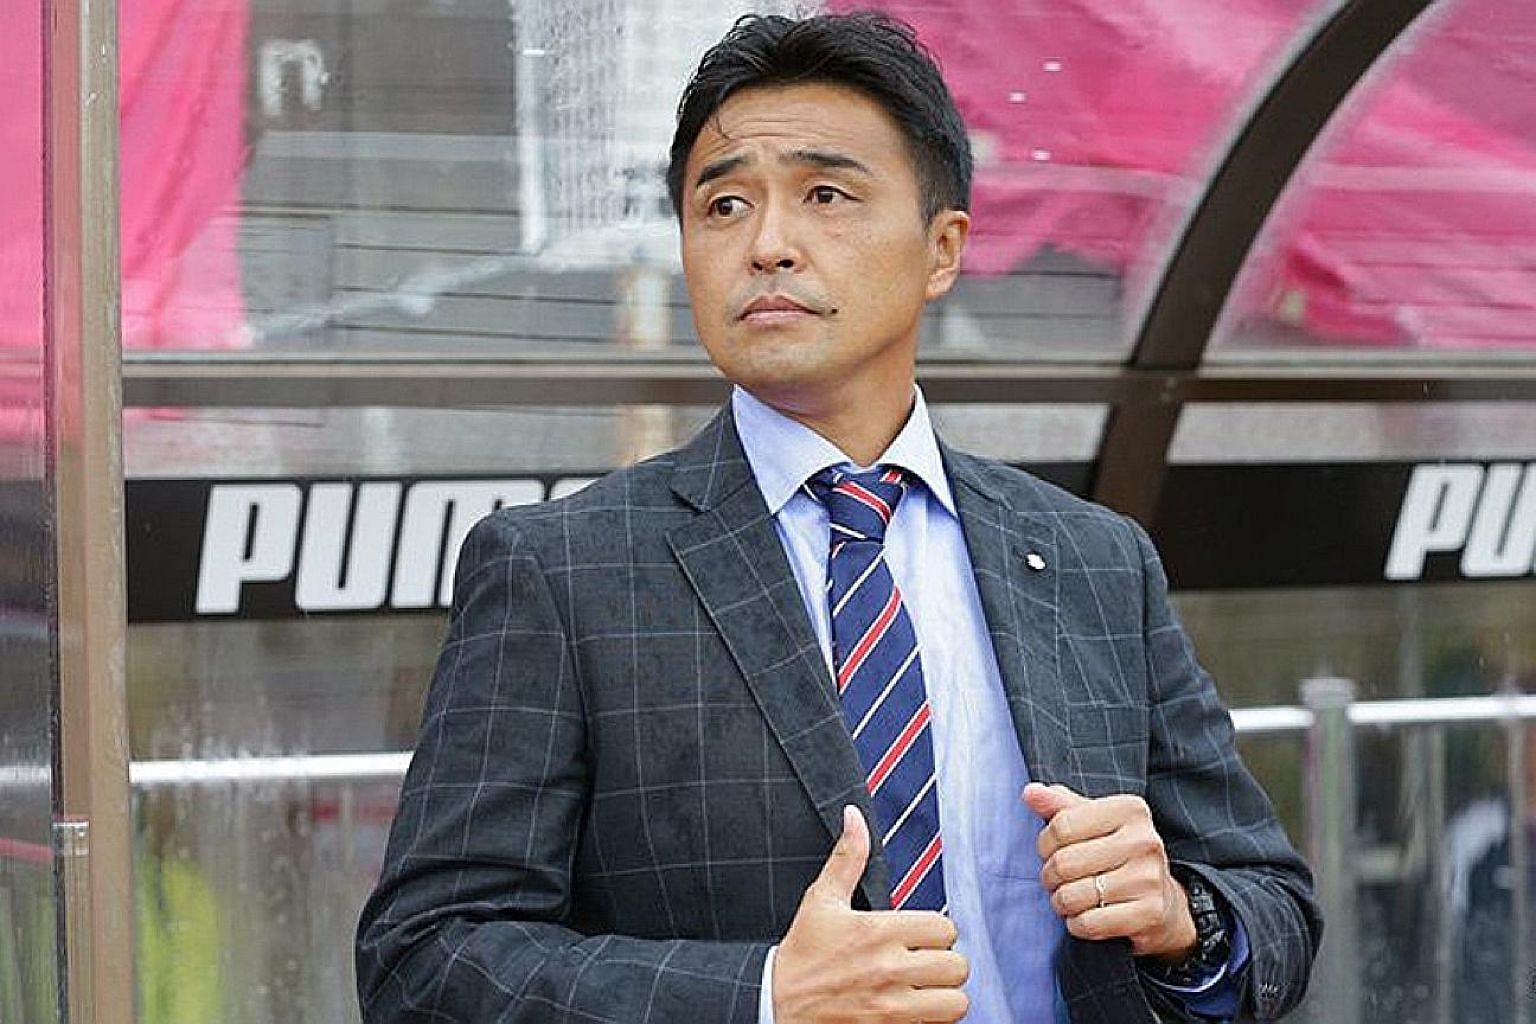 Tatsuma Yoshida has taken on the Lions' reins to rediscover their oomph. The new coach may fare better with a command of the local lingo.